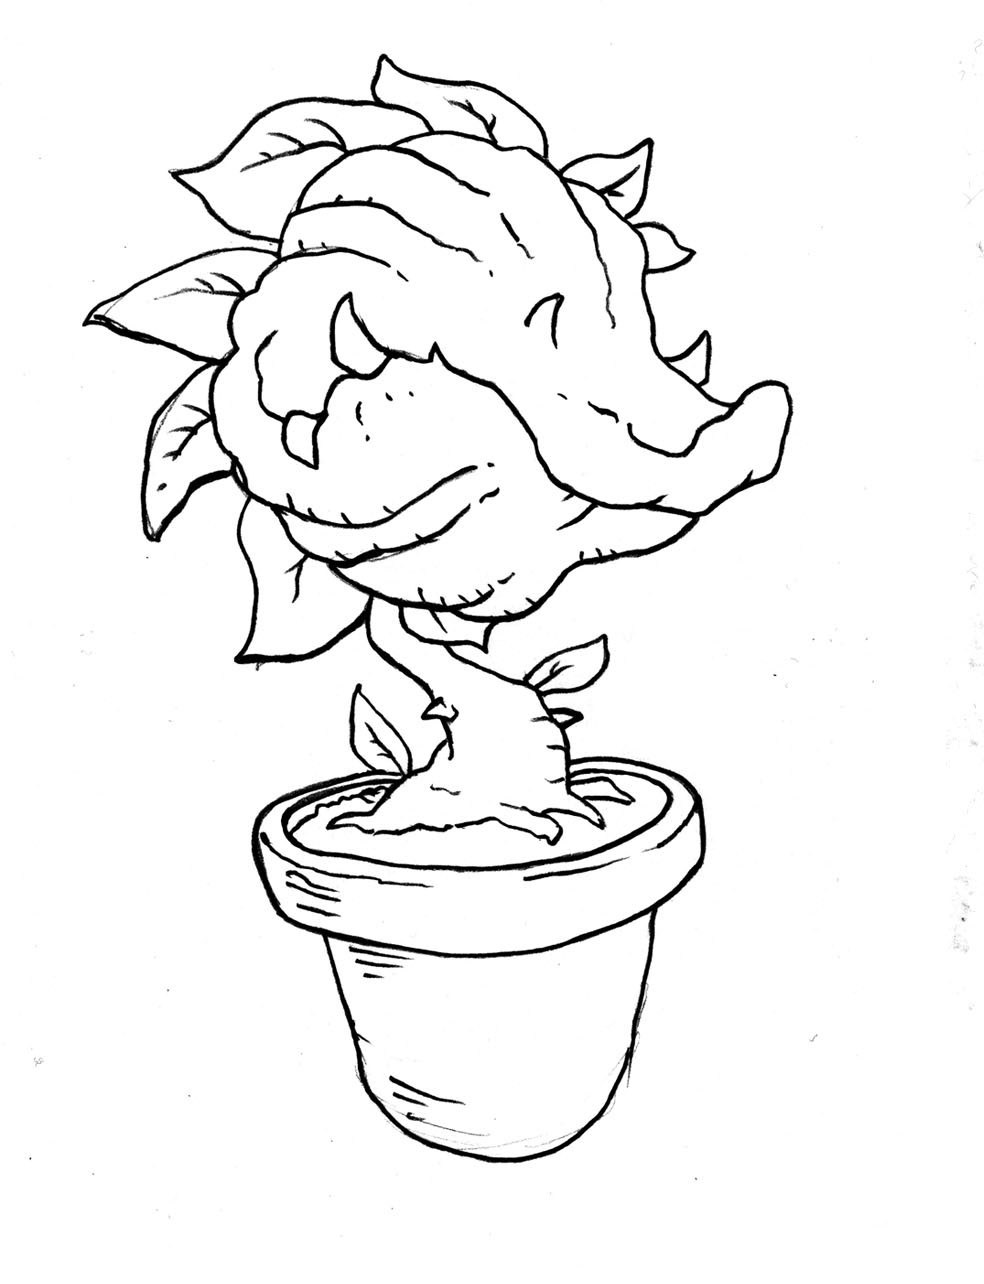 984x1284 Venus Fly Trap Coloring Sheet Coloring Page For Kids